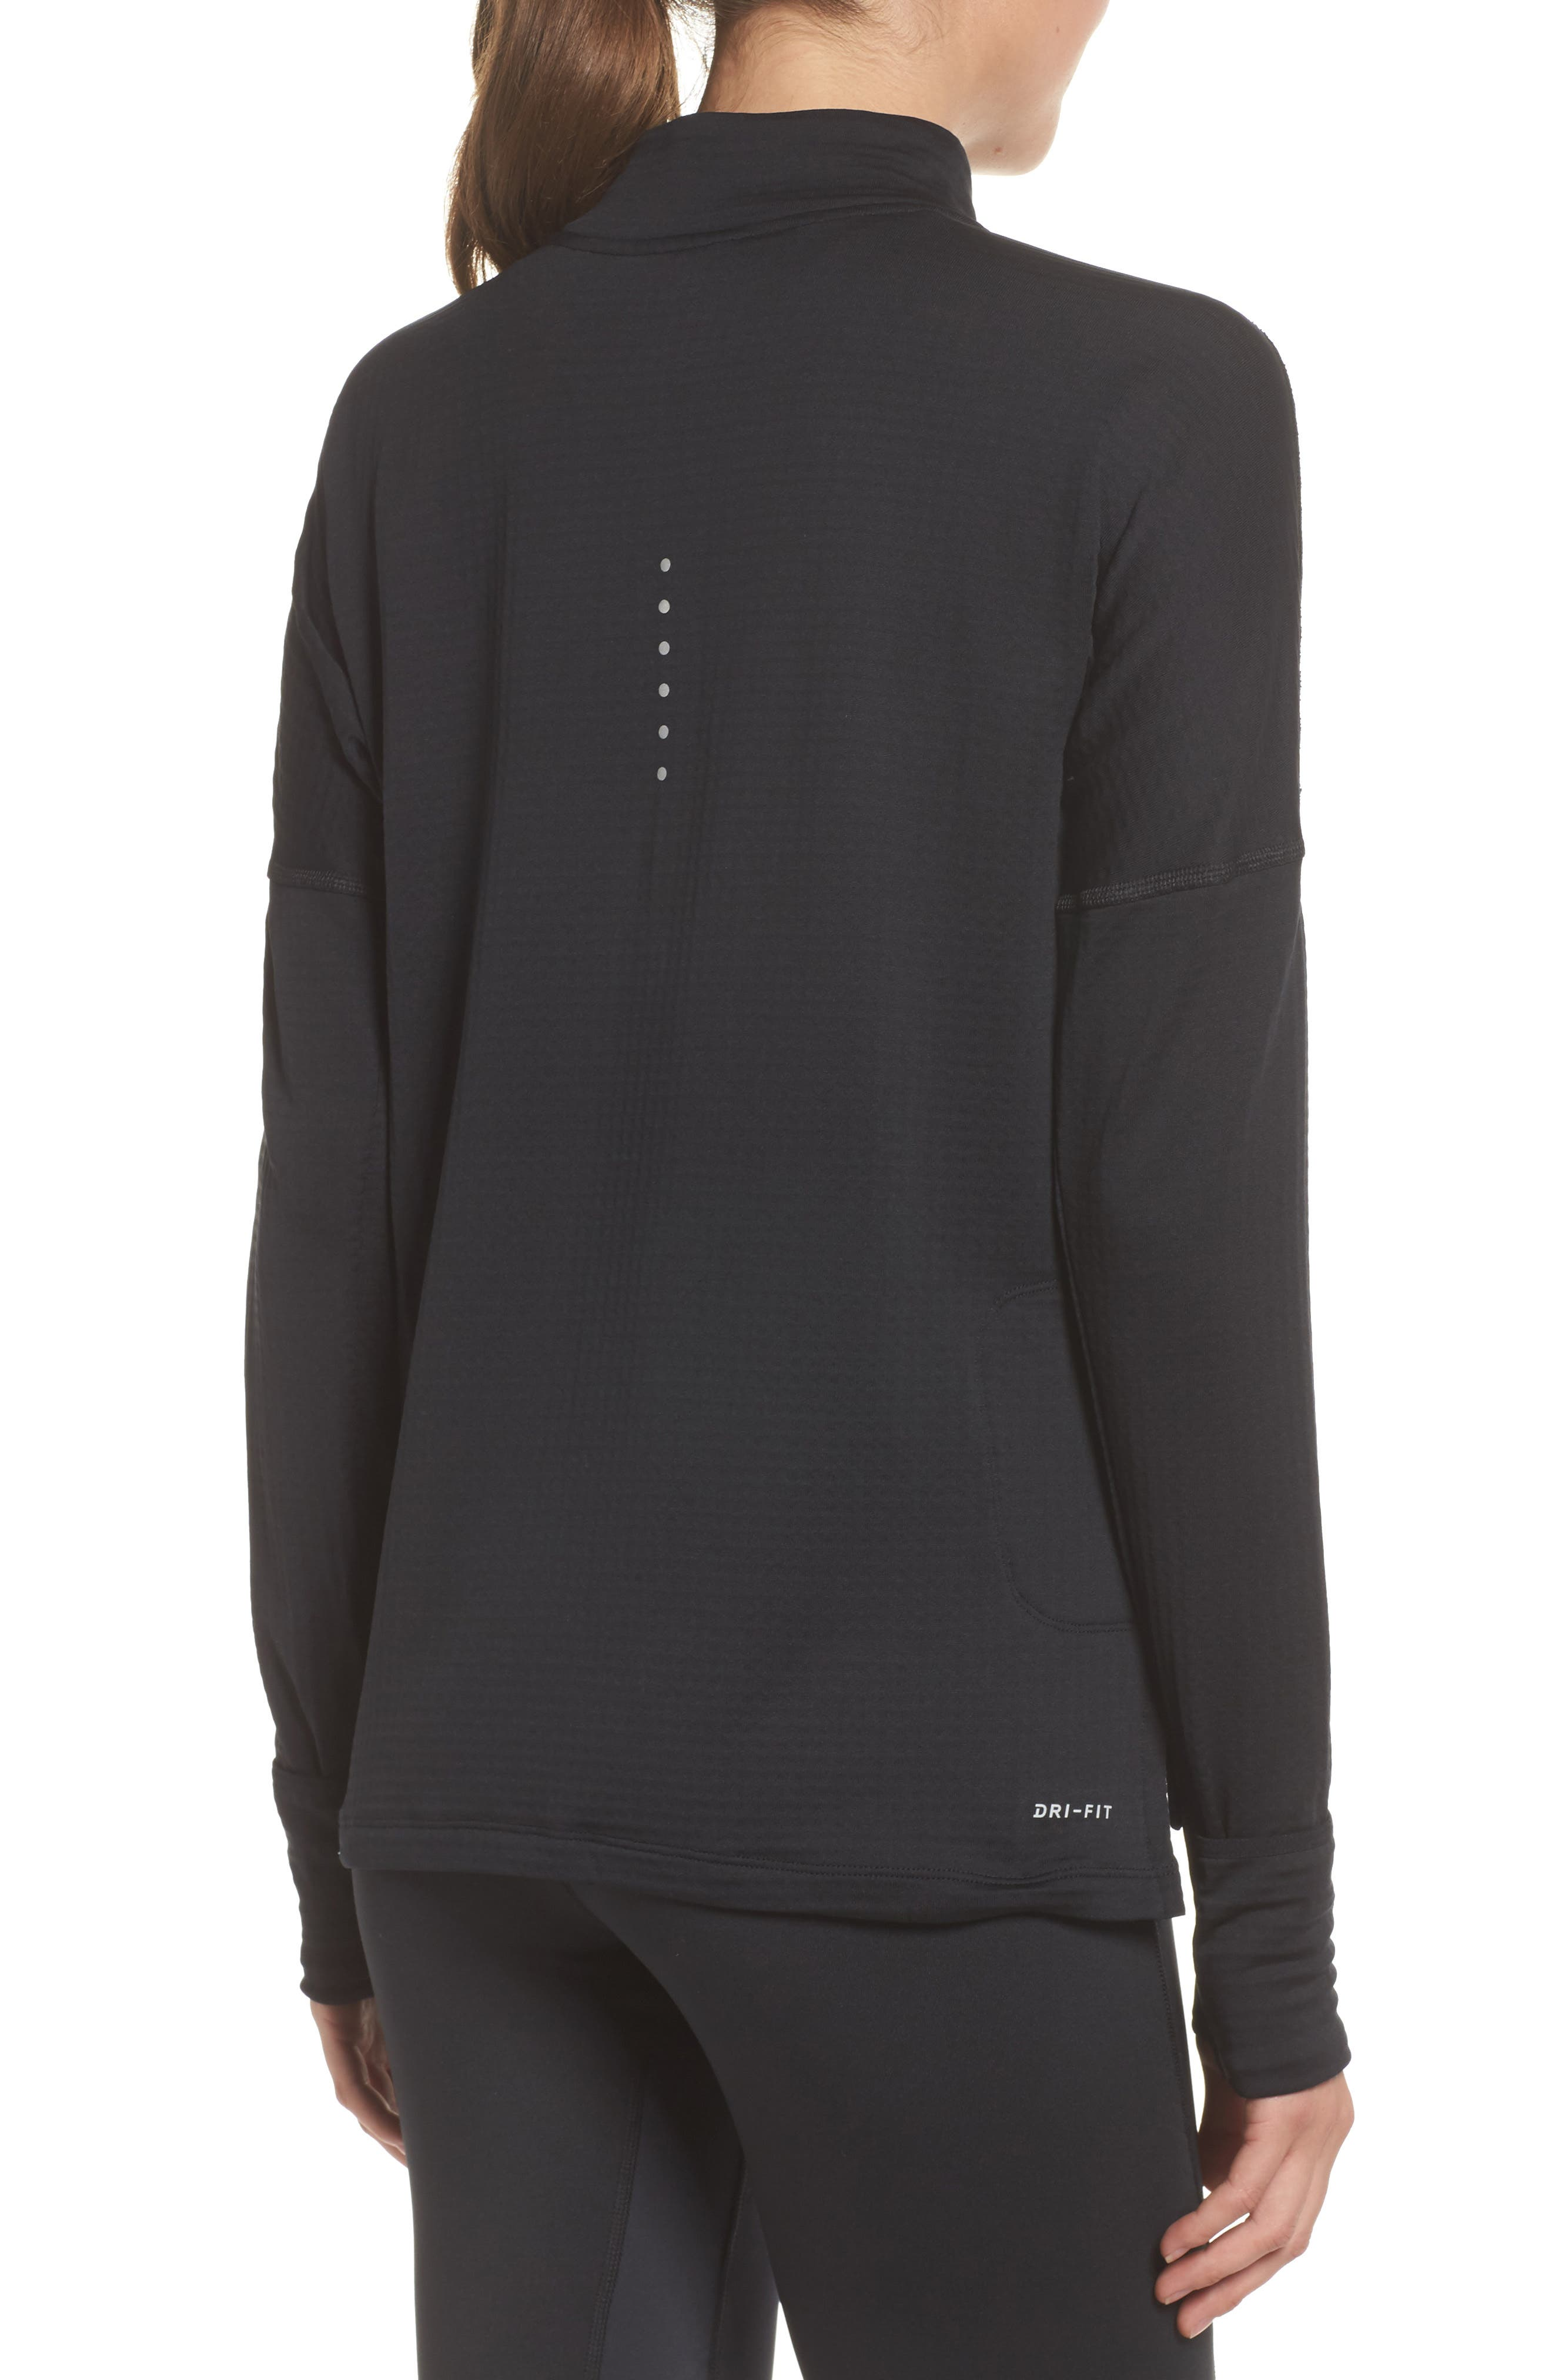 Therma Sphere Element Running Pullover Top,                             Alternate thumbnail 2, color,                             010